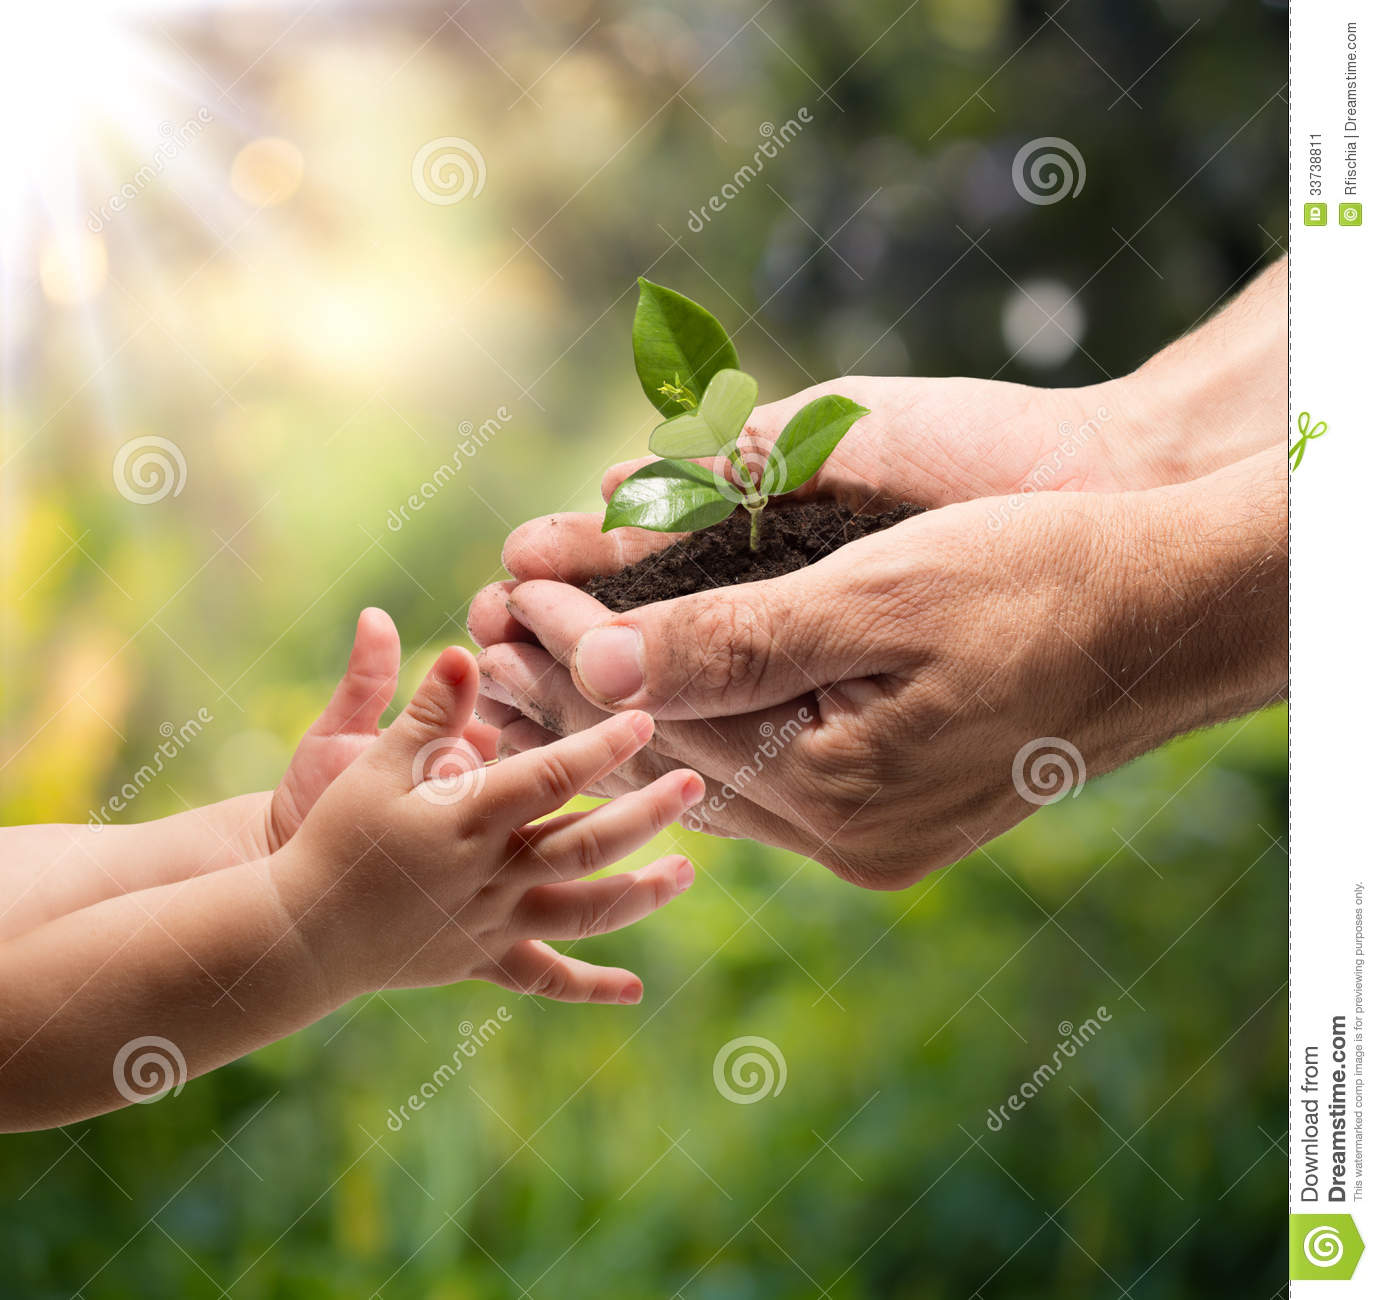 Life In Your Hands - Plant Whit Garden Background Stock Image - Image ...